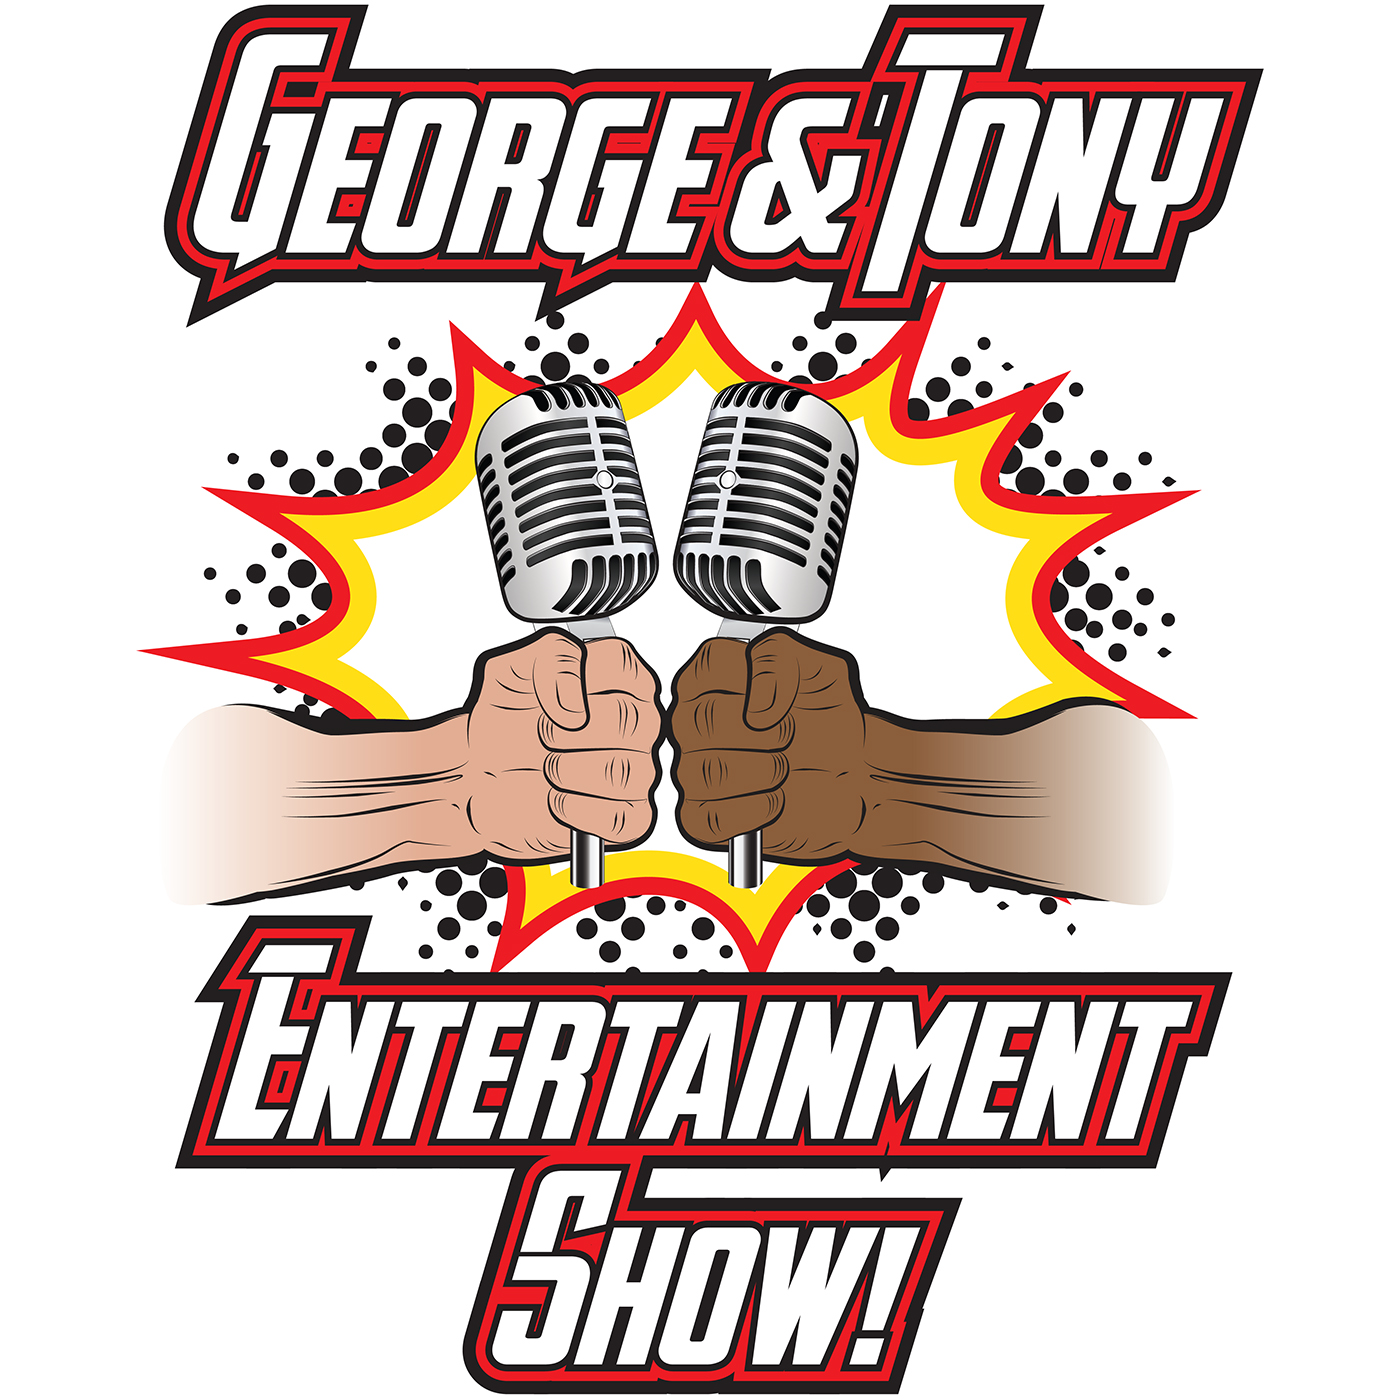 George and Tony Entertainment Show #141